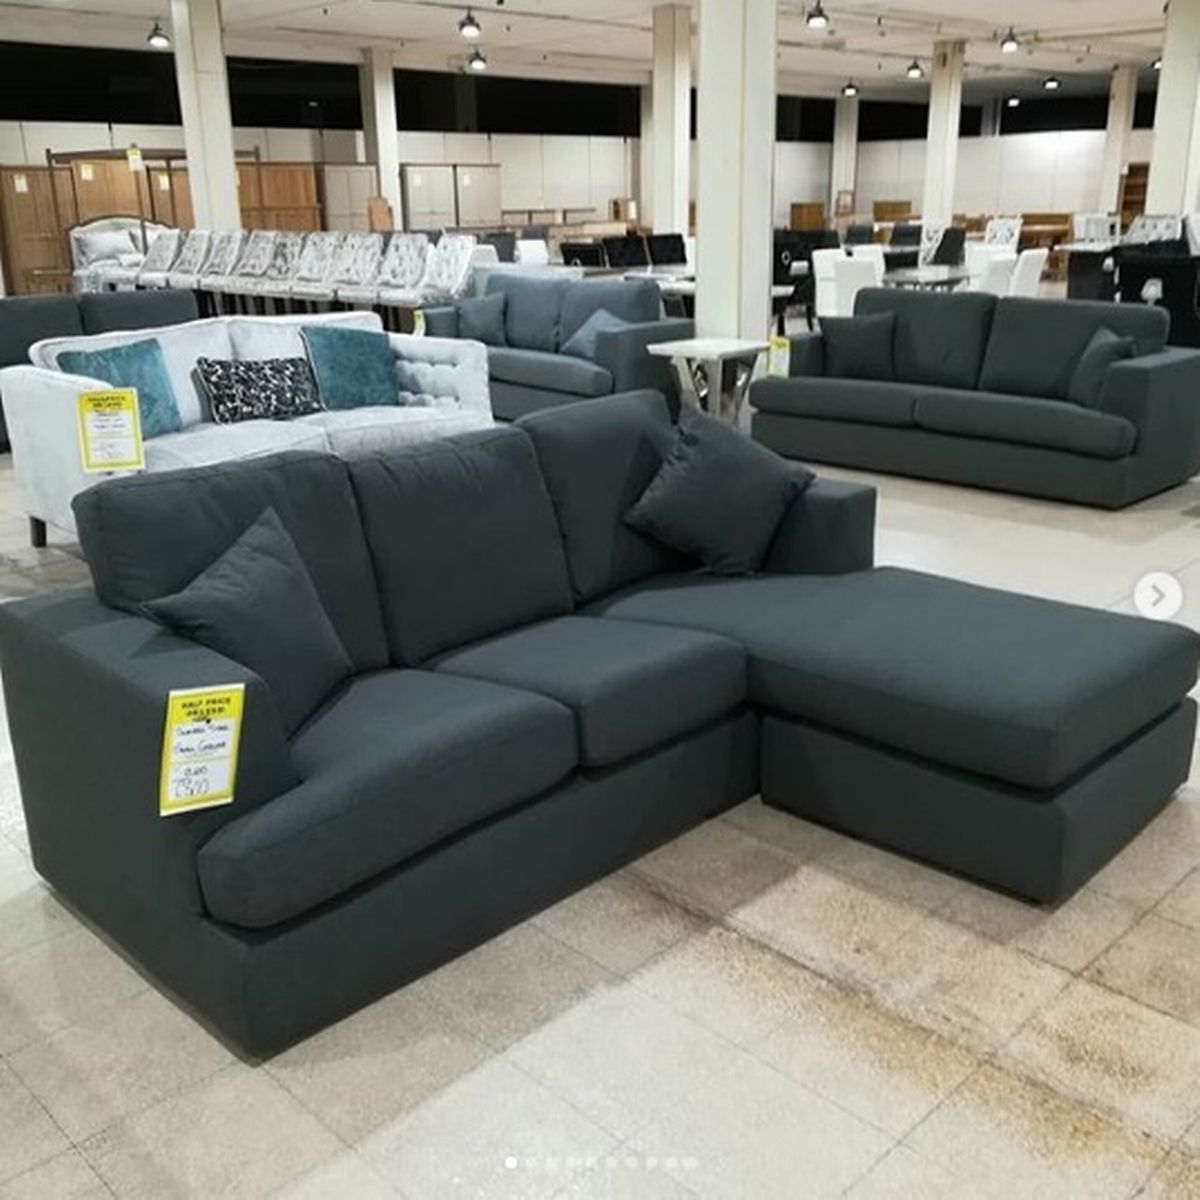 The Warehouses Selling Half Price Furniture From Next M S And More Liverpool Echo - Morrisons Garden Furniture Clearance